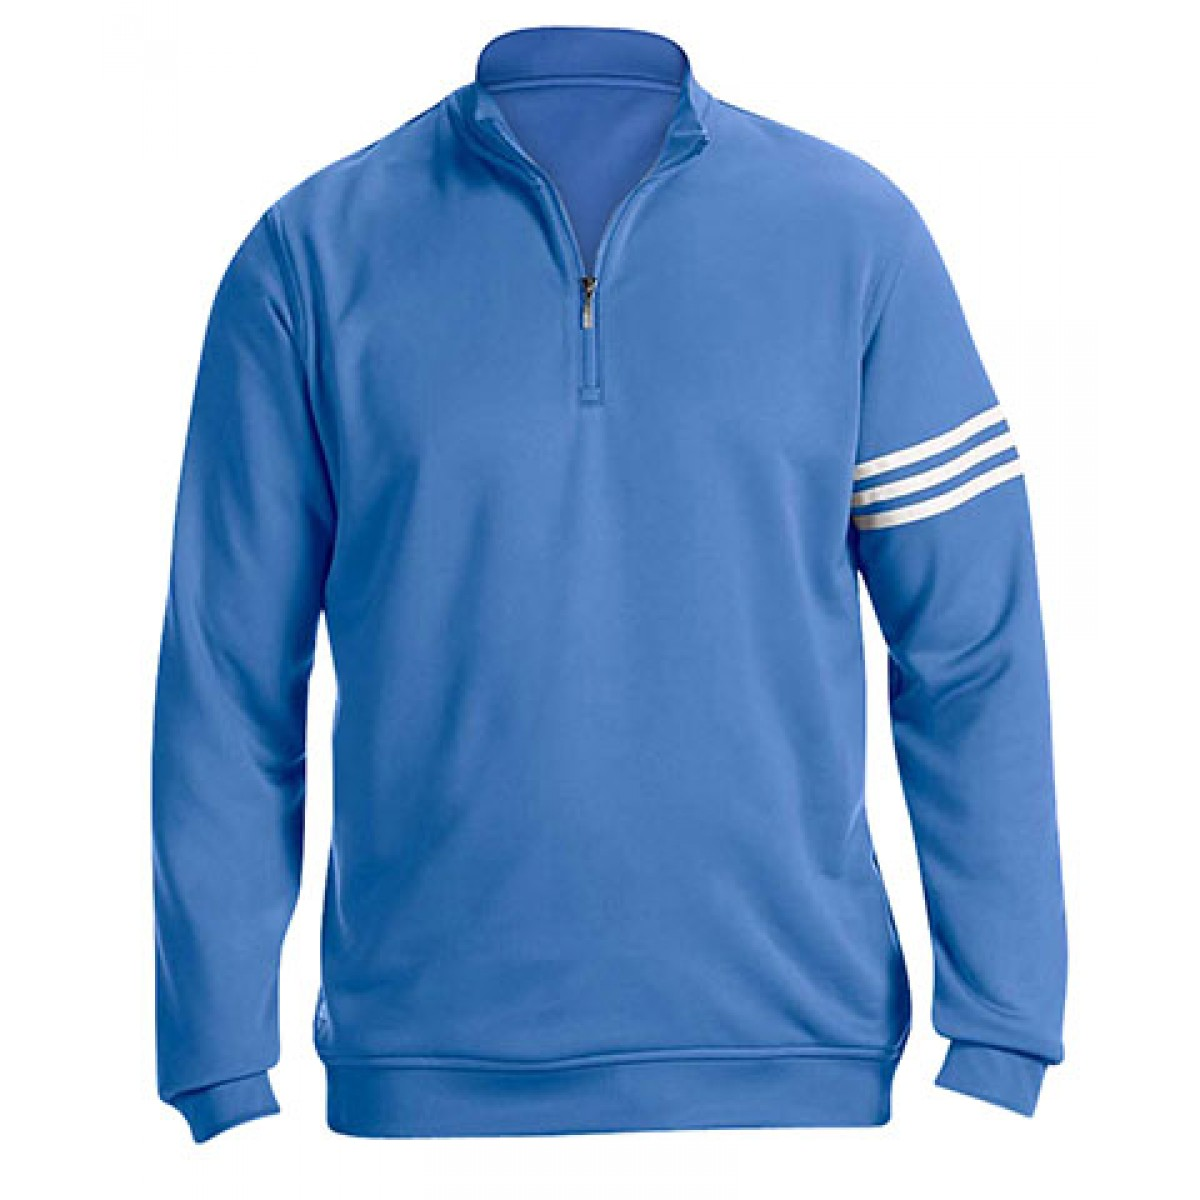 Adidas Golf Men's ClimaLite® 3-Stripes Pullover-Blue-2XL